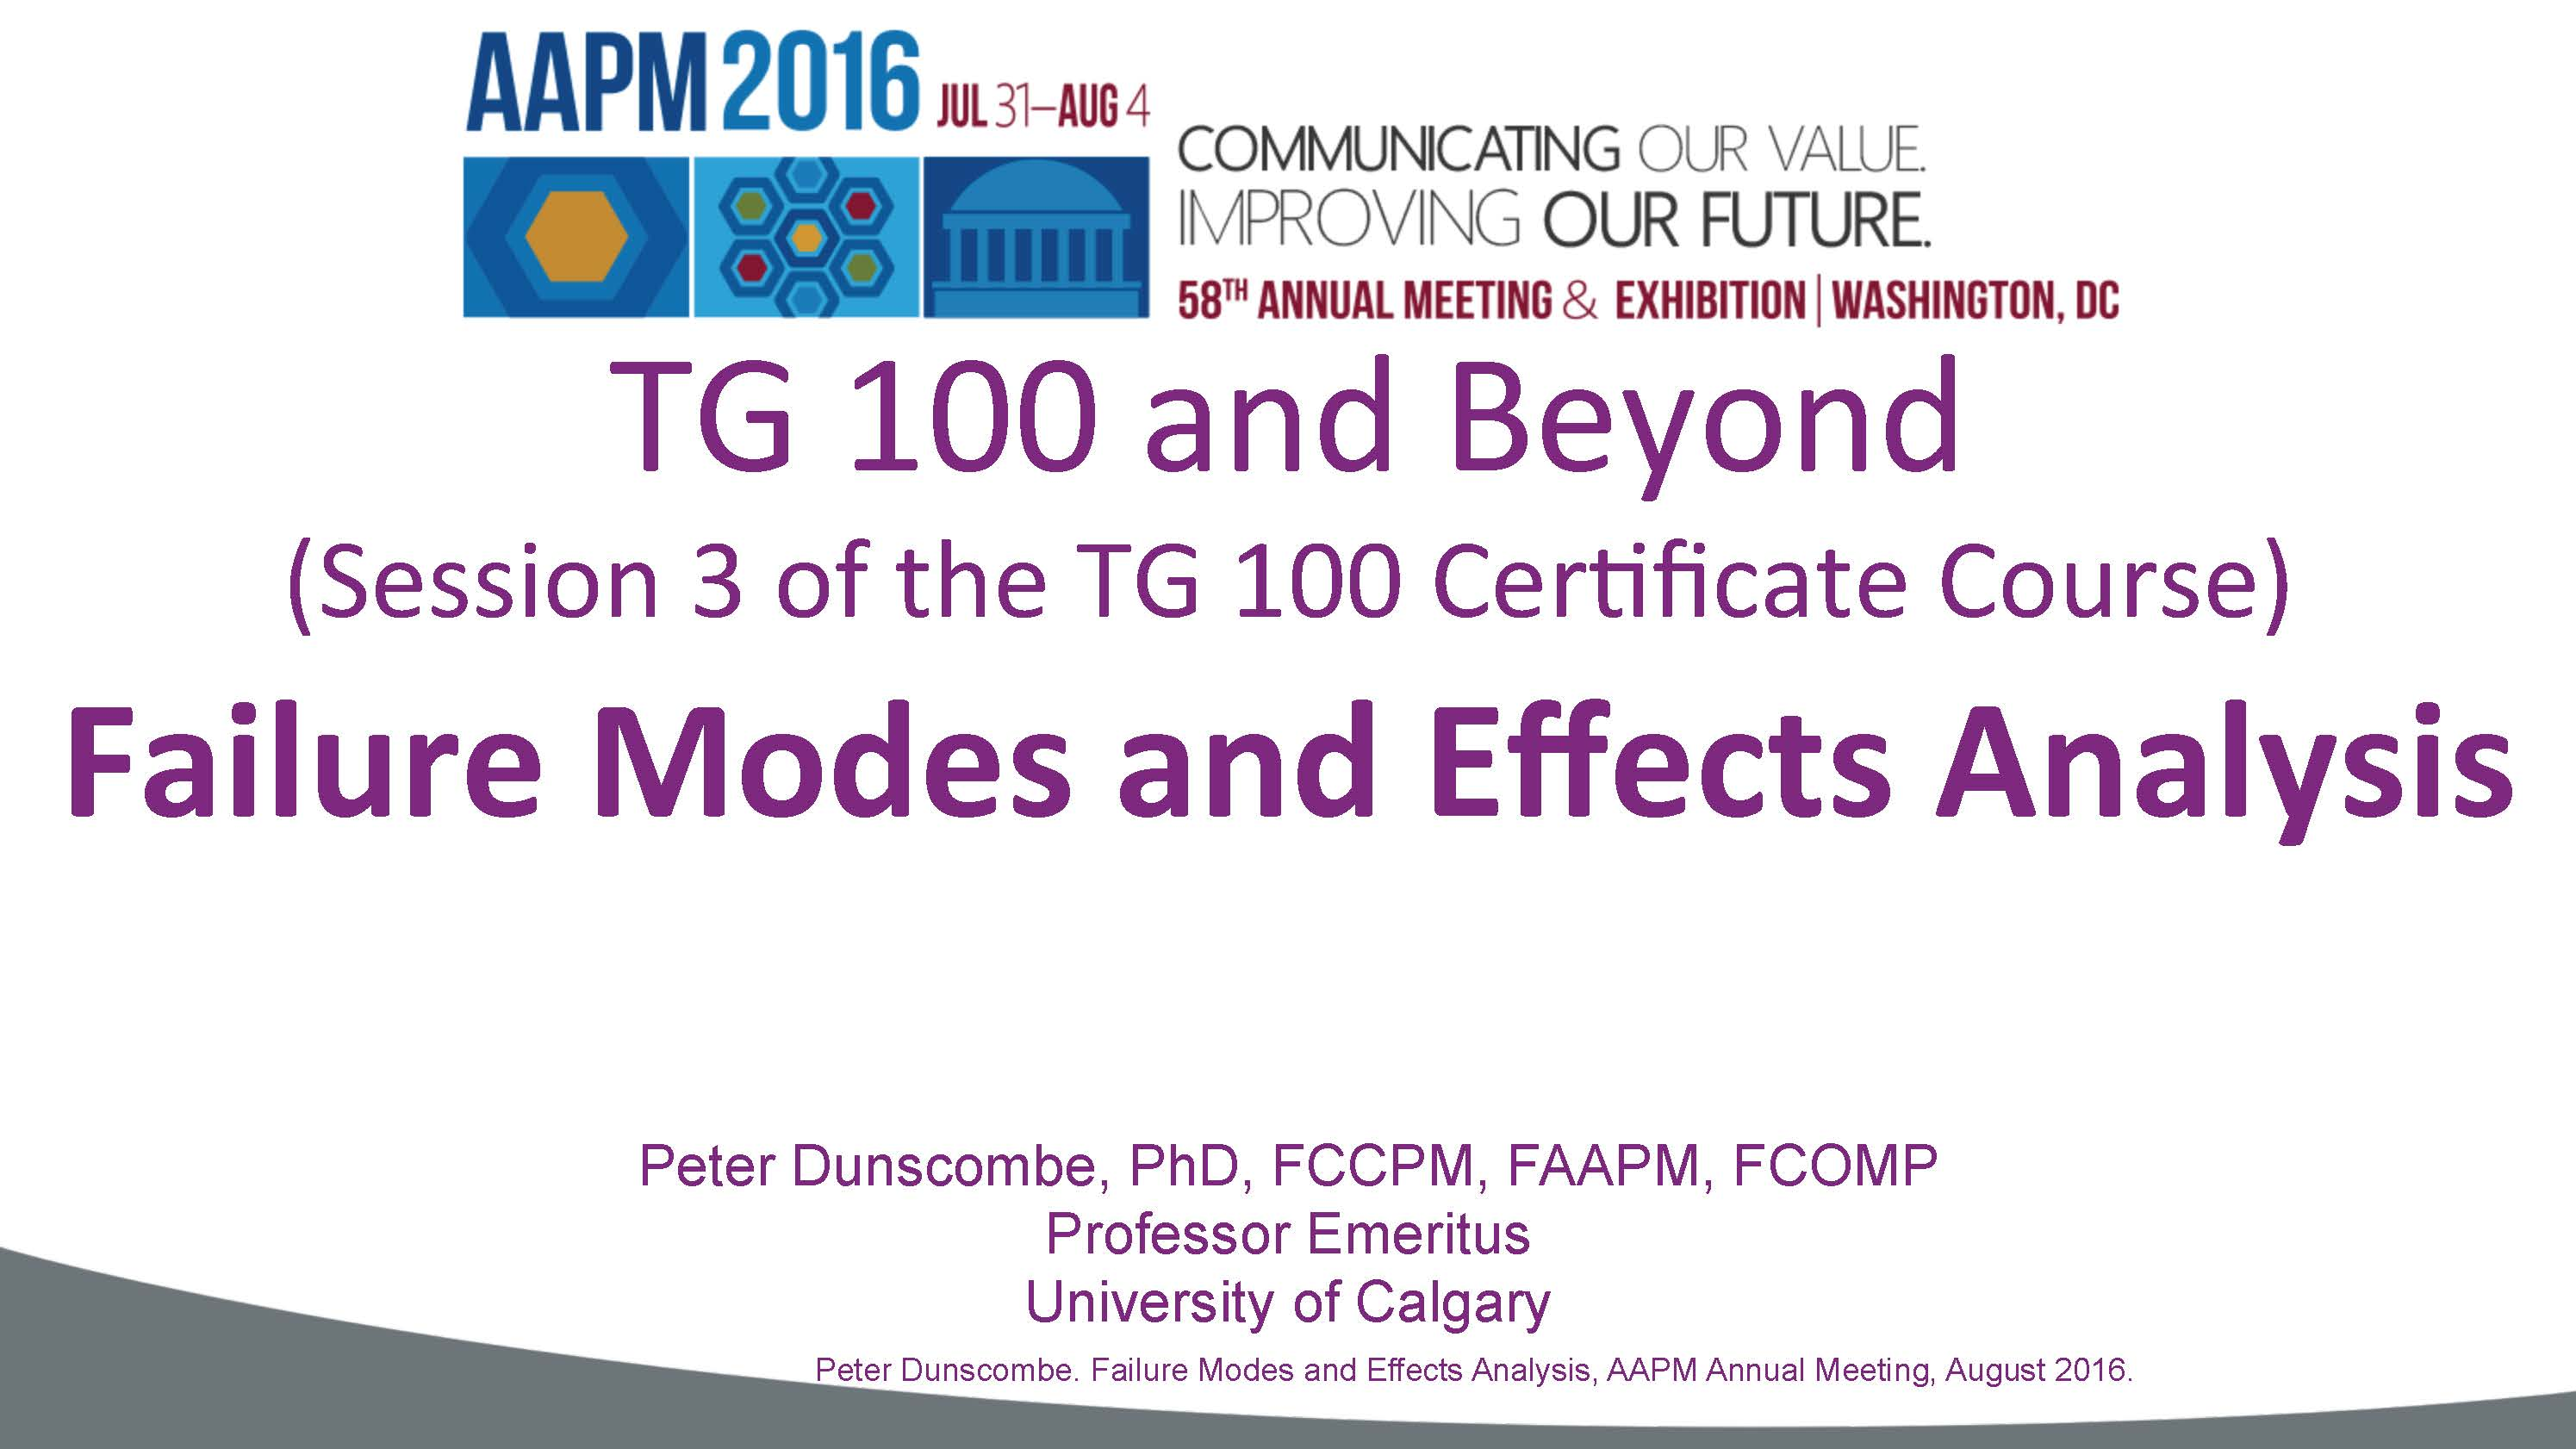 Aapm vl learning the new approaches of tg 100 and beyond session failure mode and effect analysis xflitez Gallery